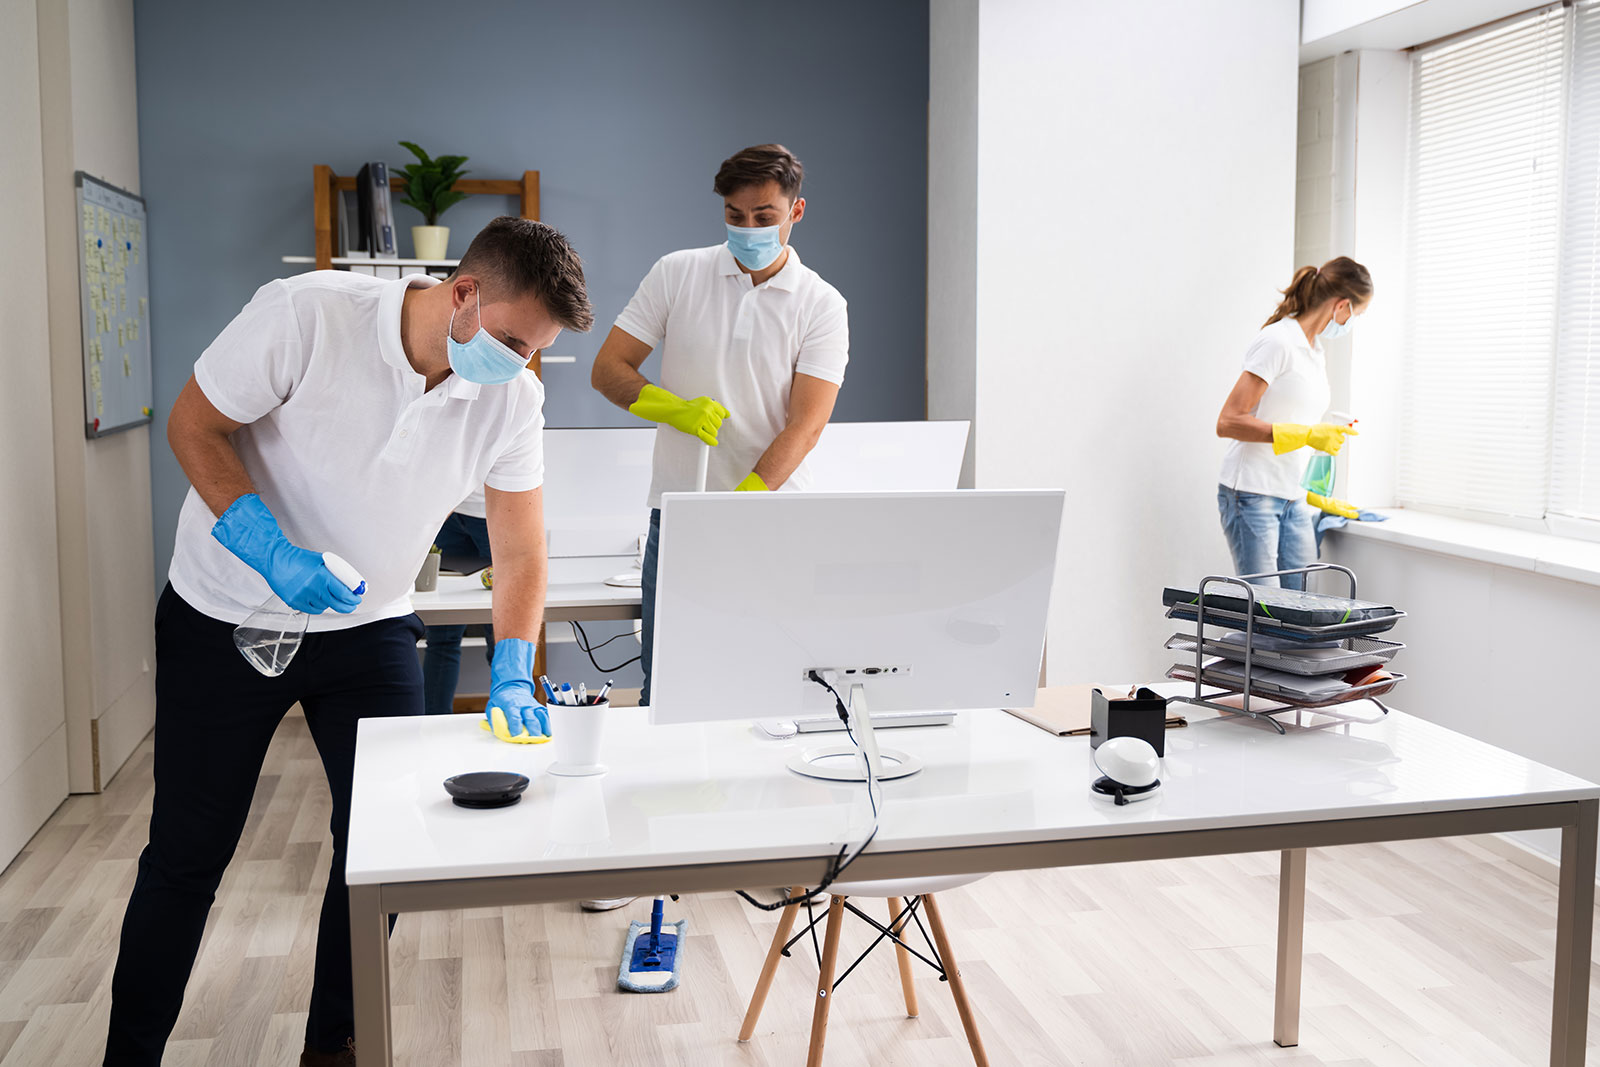 Disinfecting and cleaning offices and facilities during the COVID-19 crisis